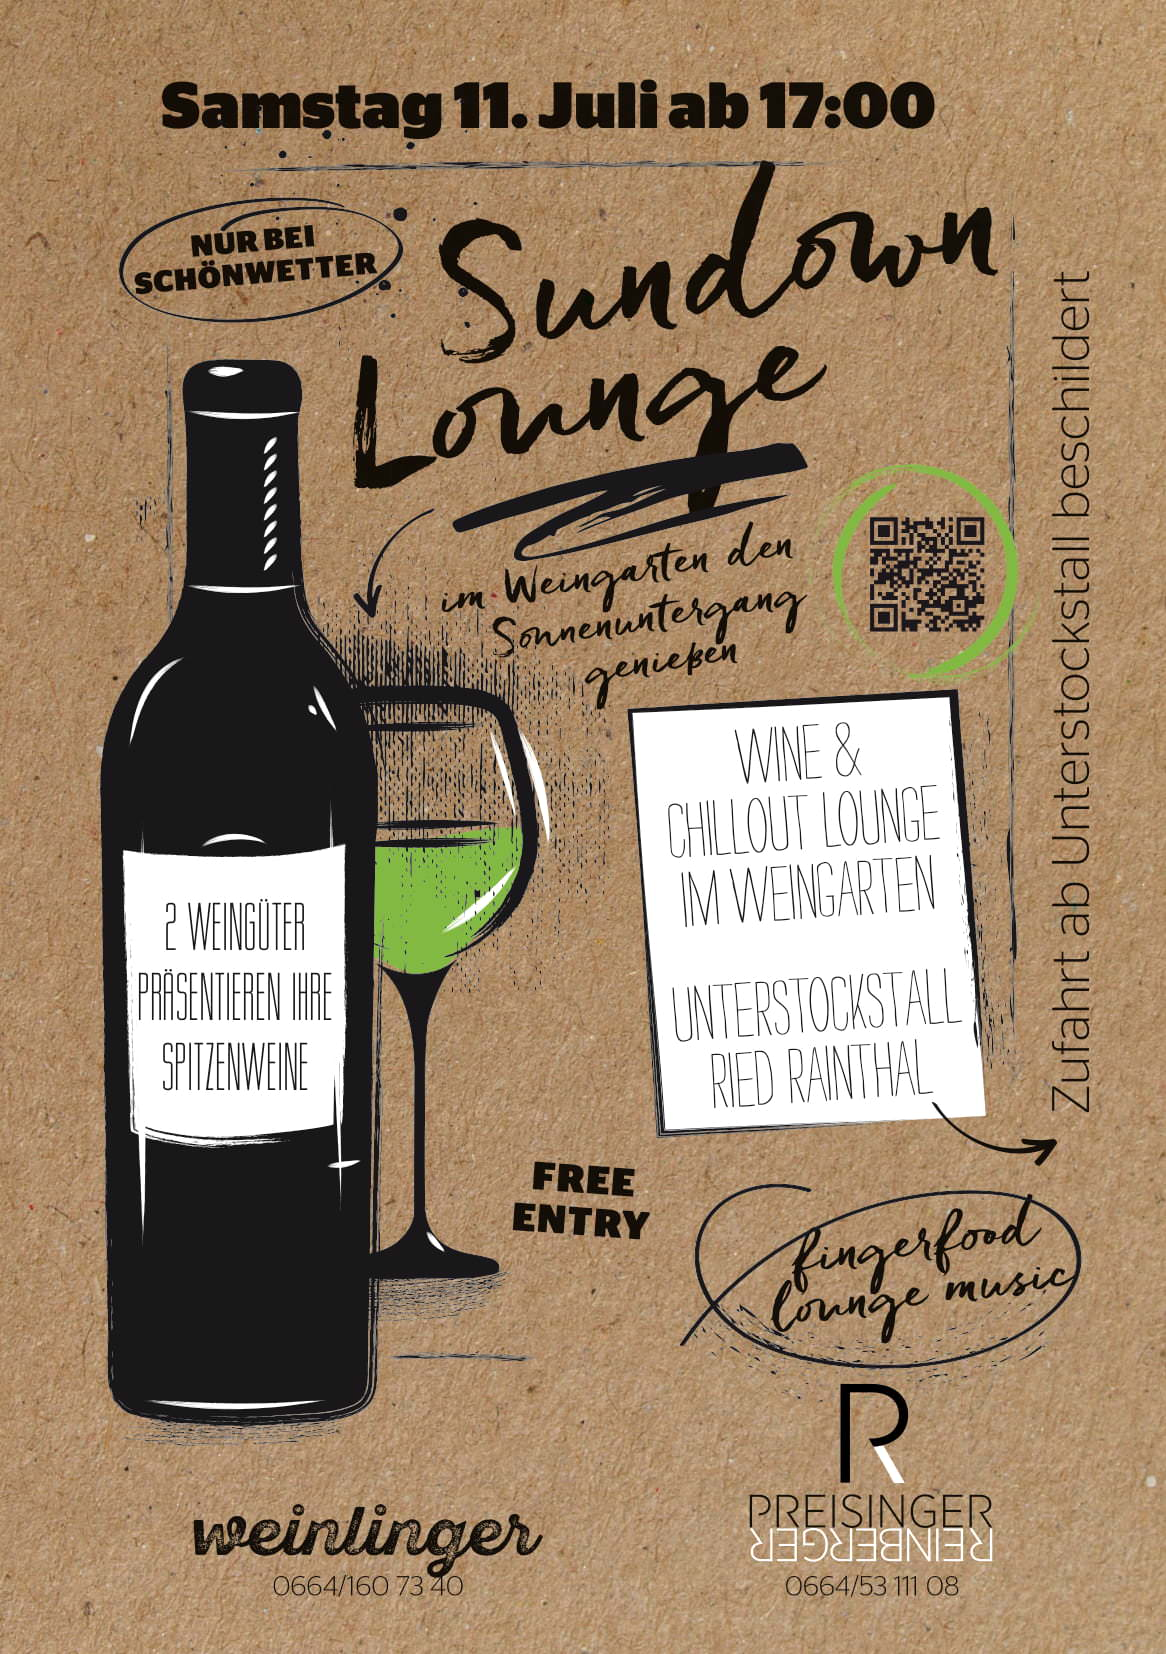 Sundown lounge am 11. Juli ab 17:00